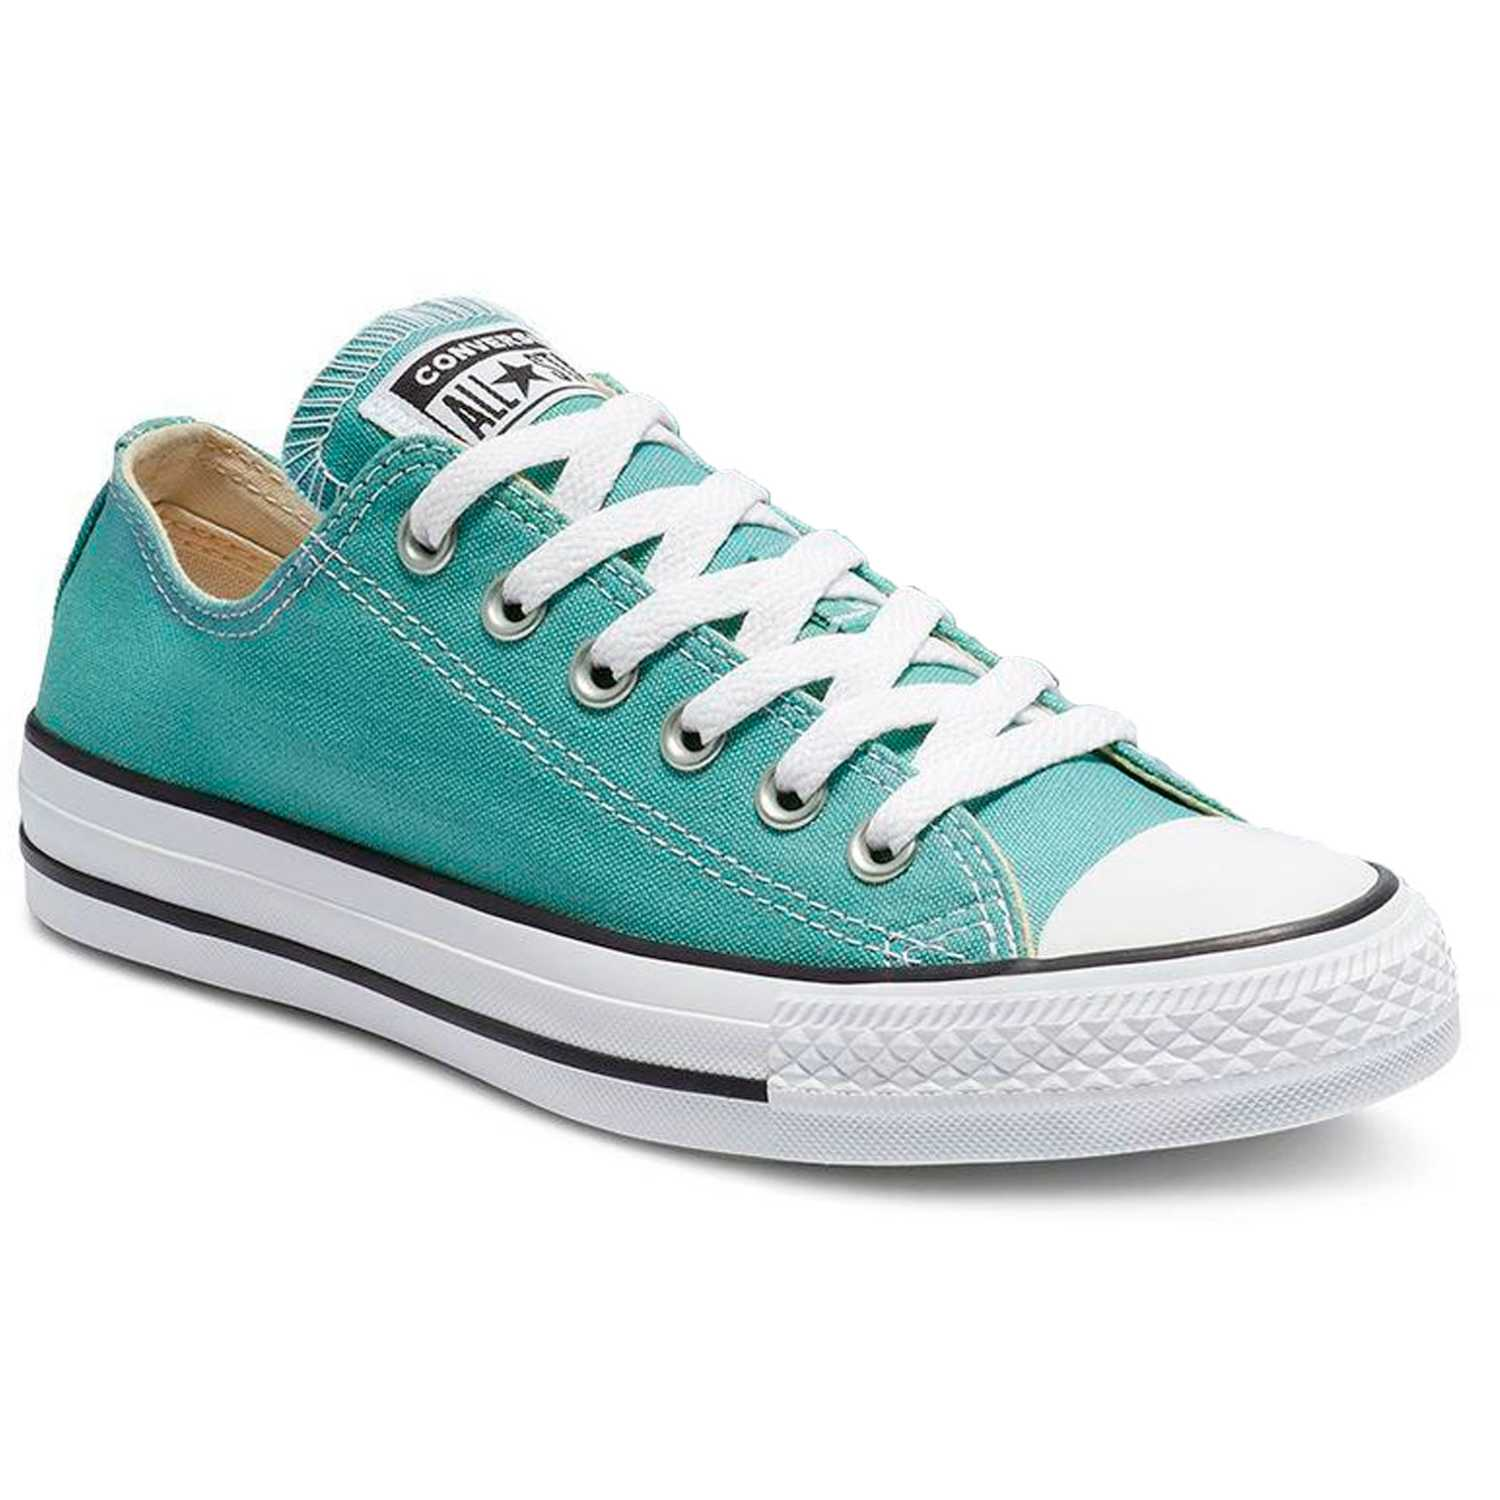 Converse chuck taylor all star seasonal ox Verde Walking